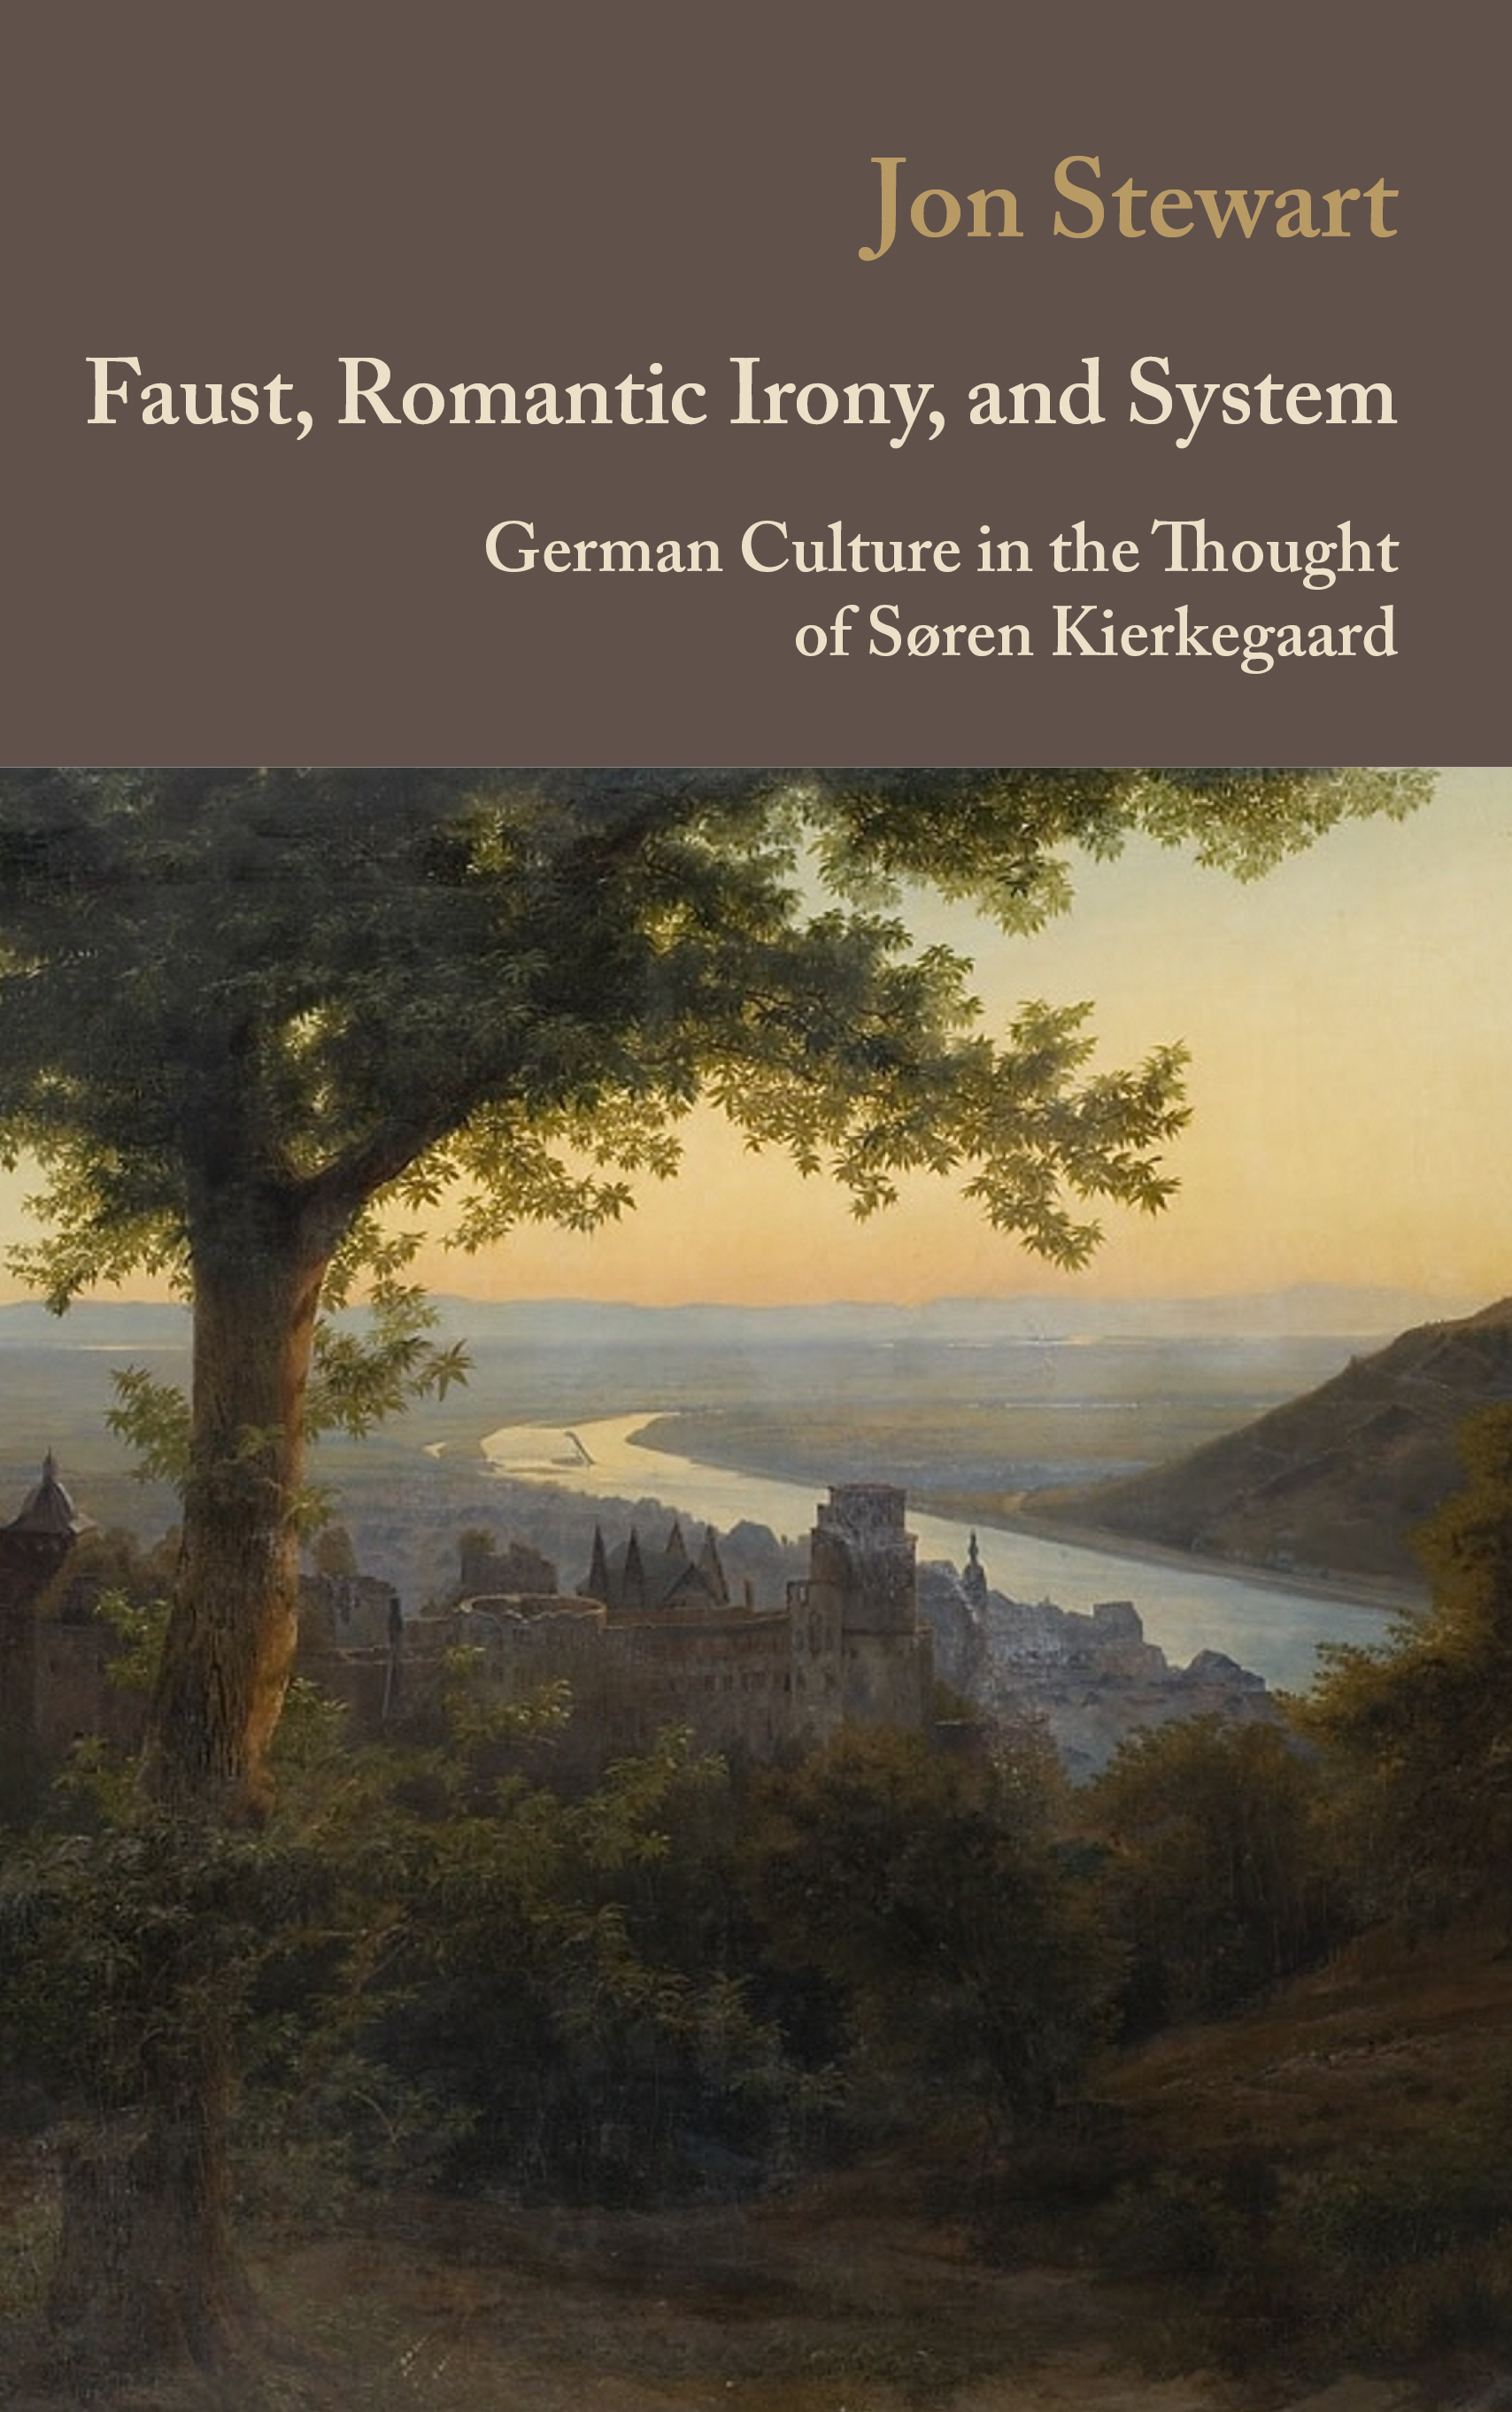 Kierkegaard and German culture cover